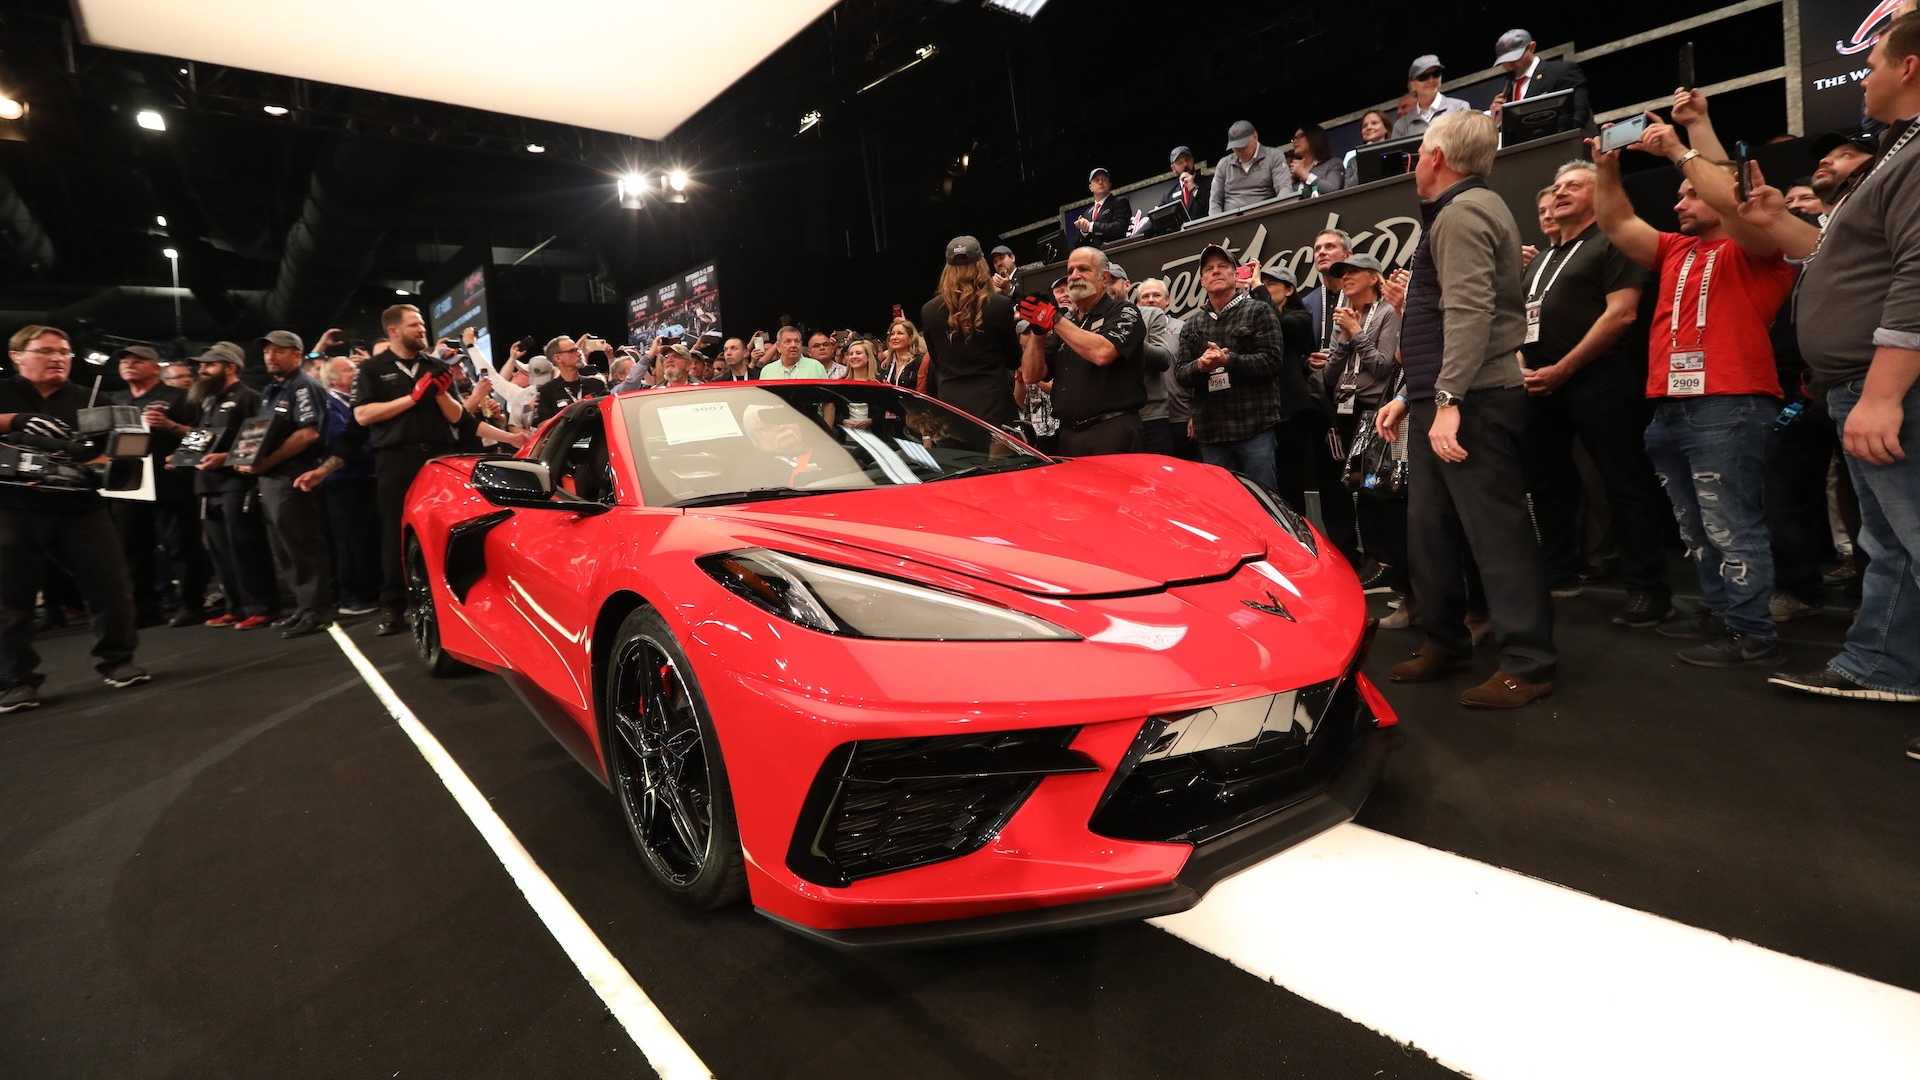 2020_Chevrolet_Corvette_Stingray_VIN_001_Sold_0003